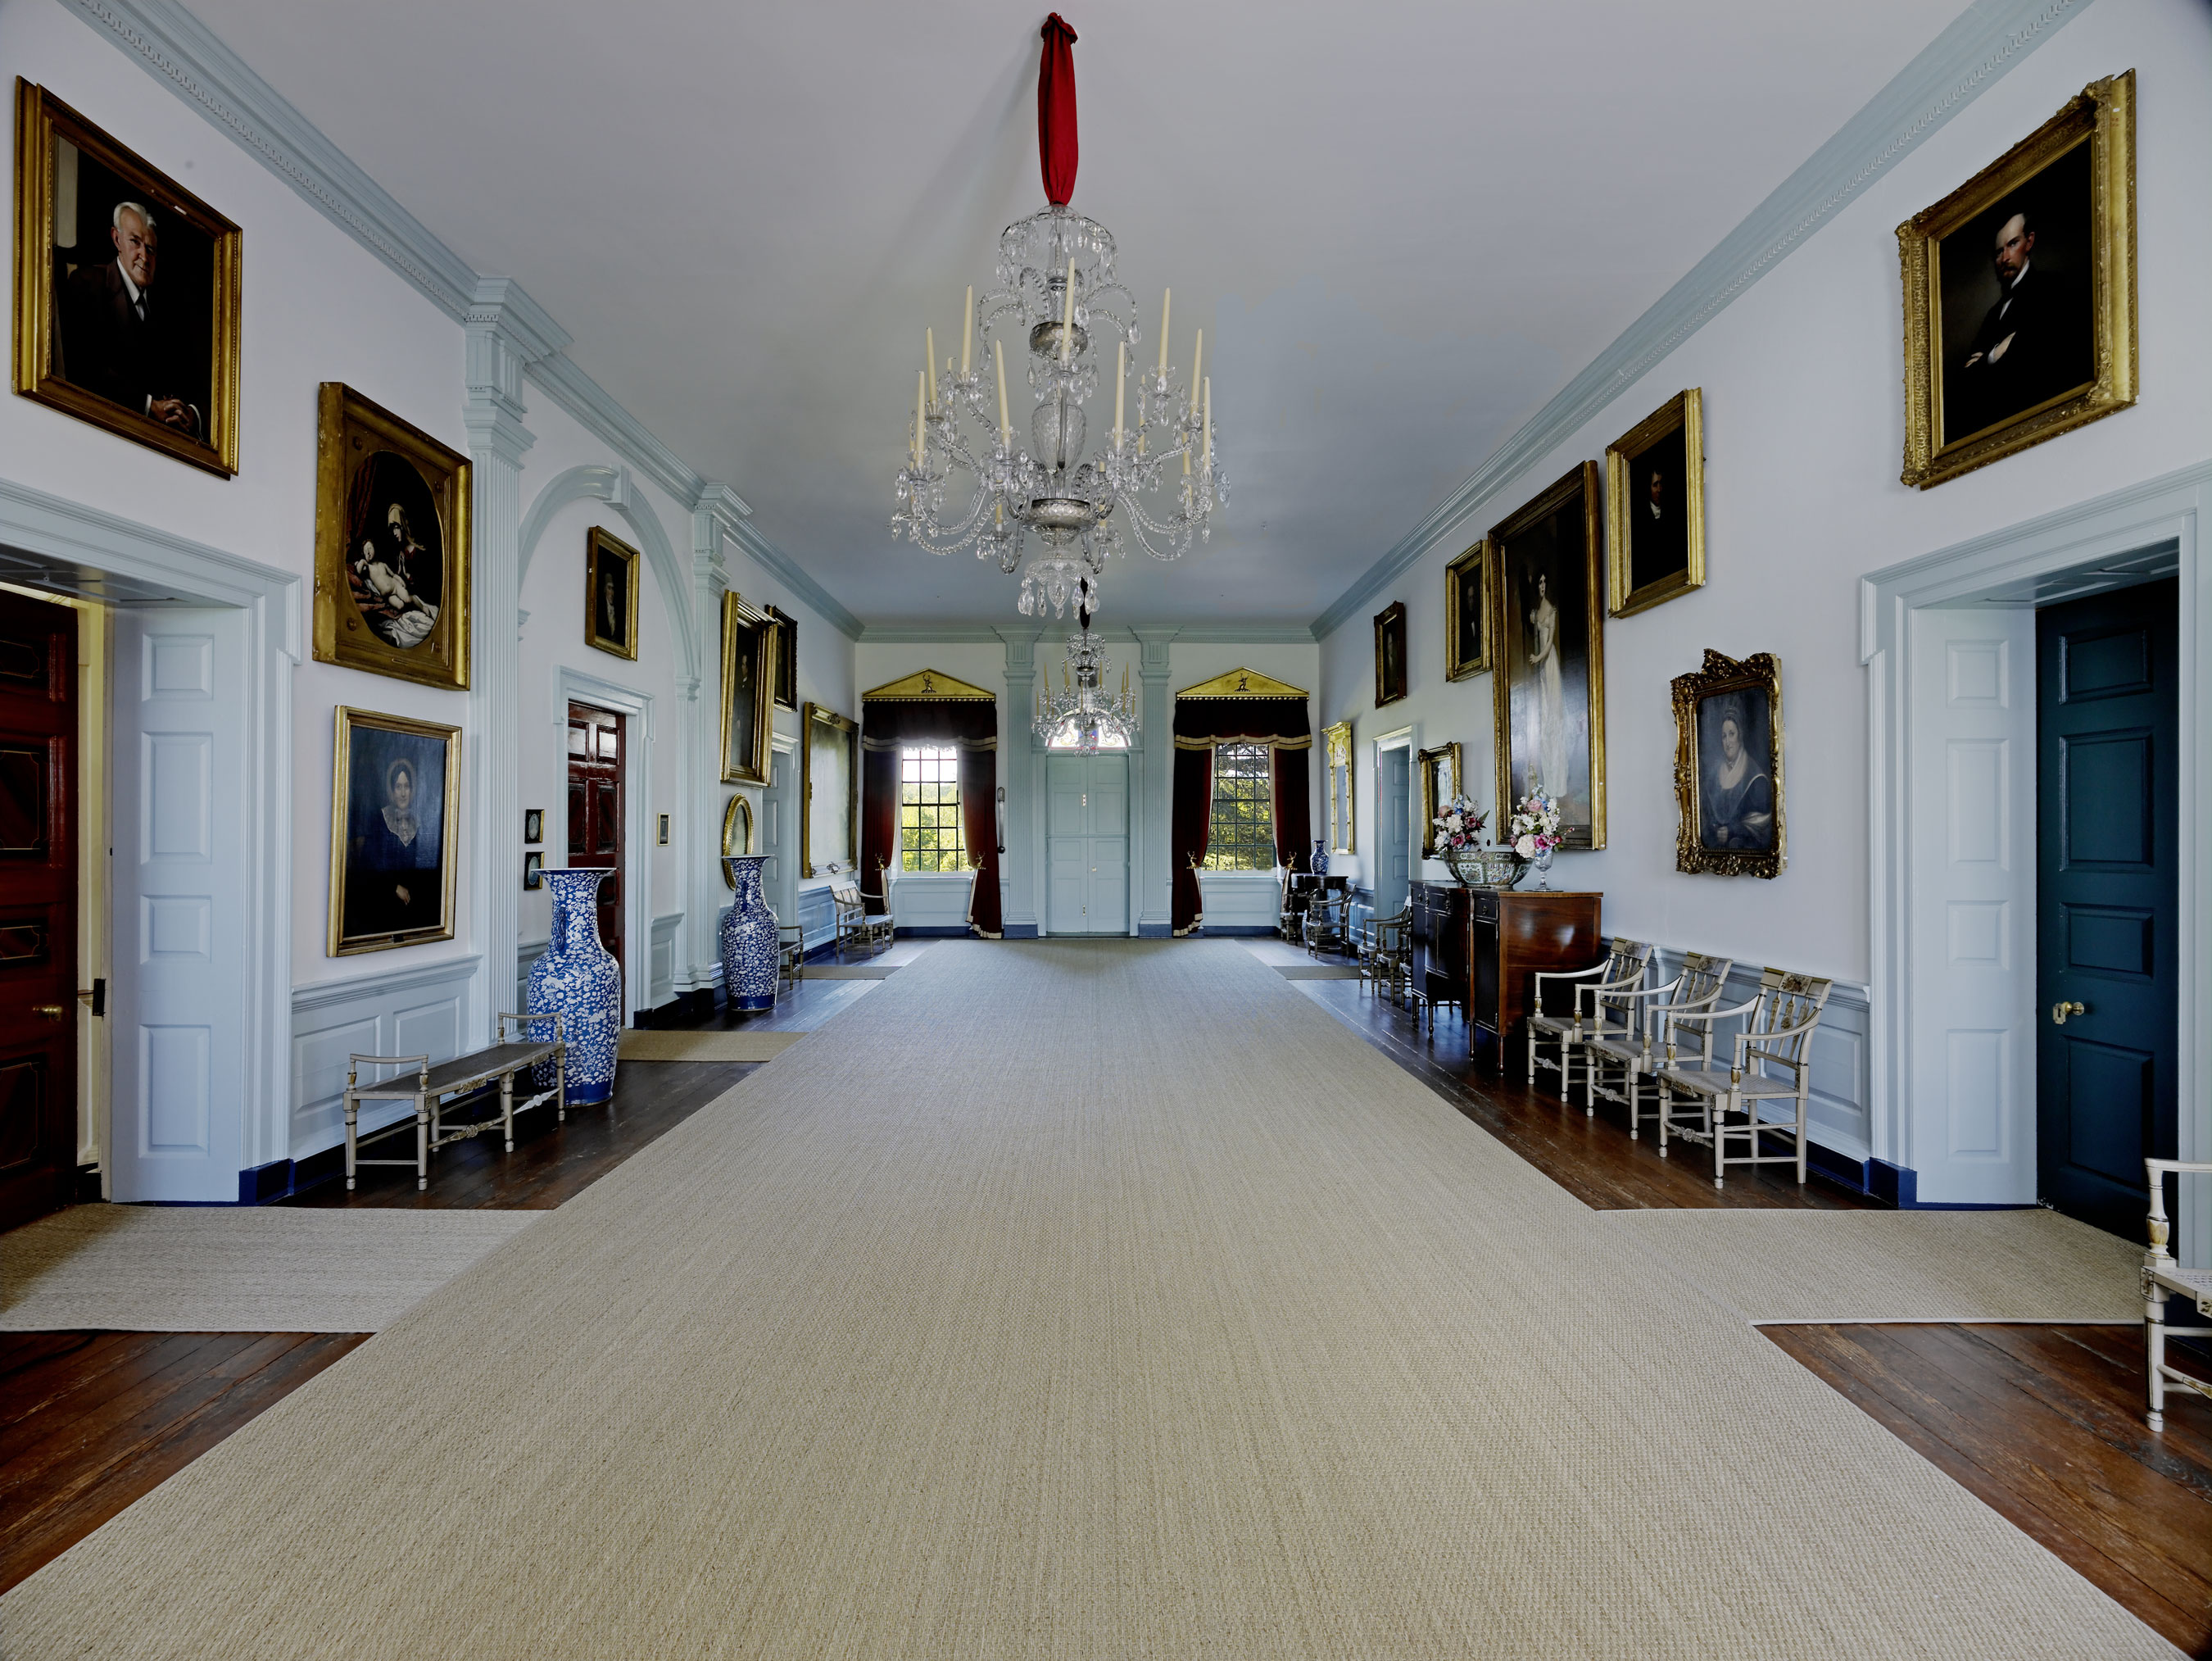 Hampton national historic site - Although Somewhat More Sparsely Furnished Today Than In The Historic Period The Great Hall Encapsulates The History Of Hampton And Generations Of The